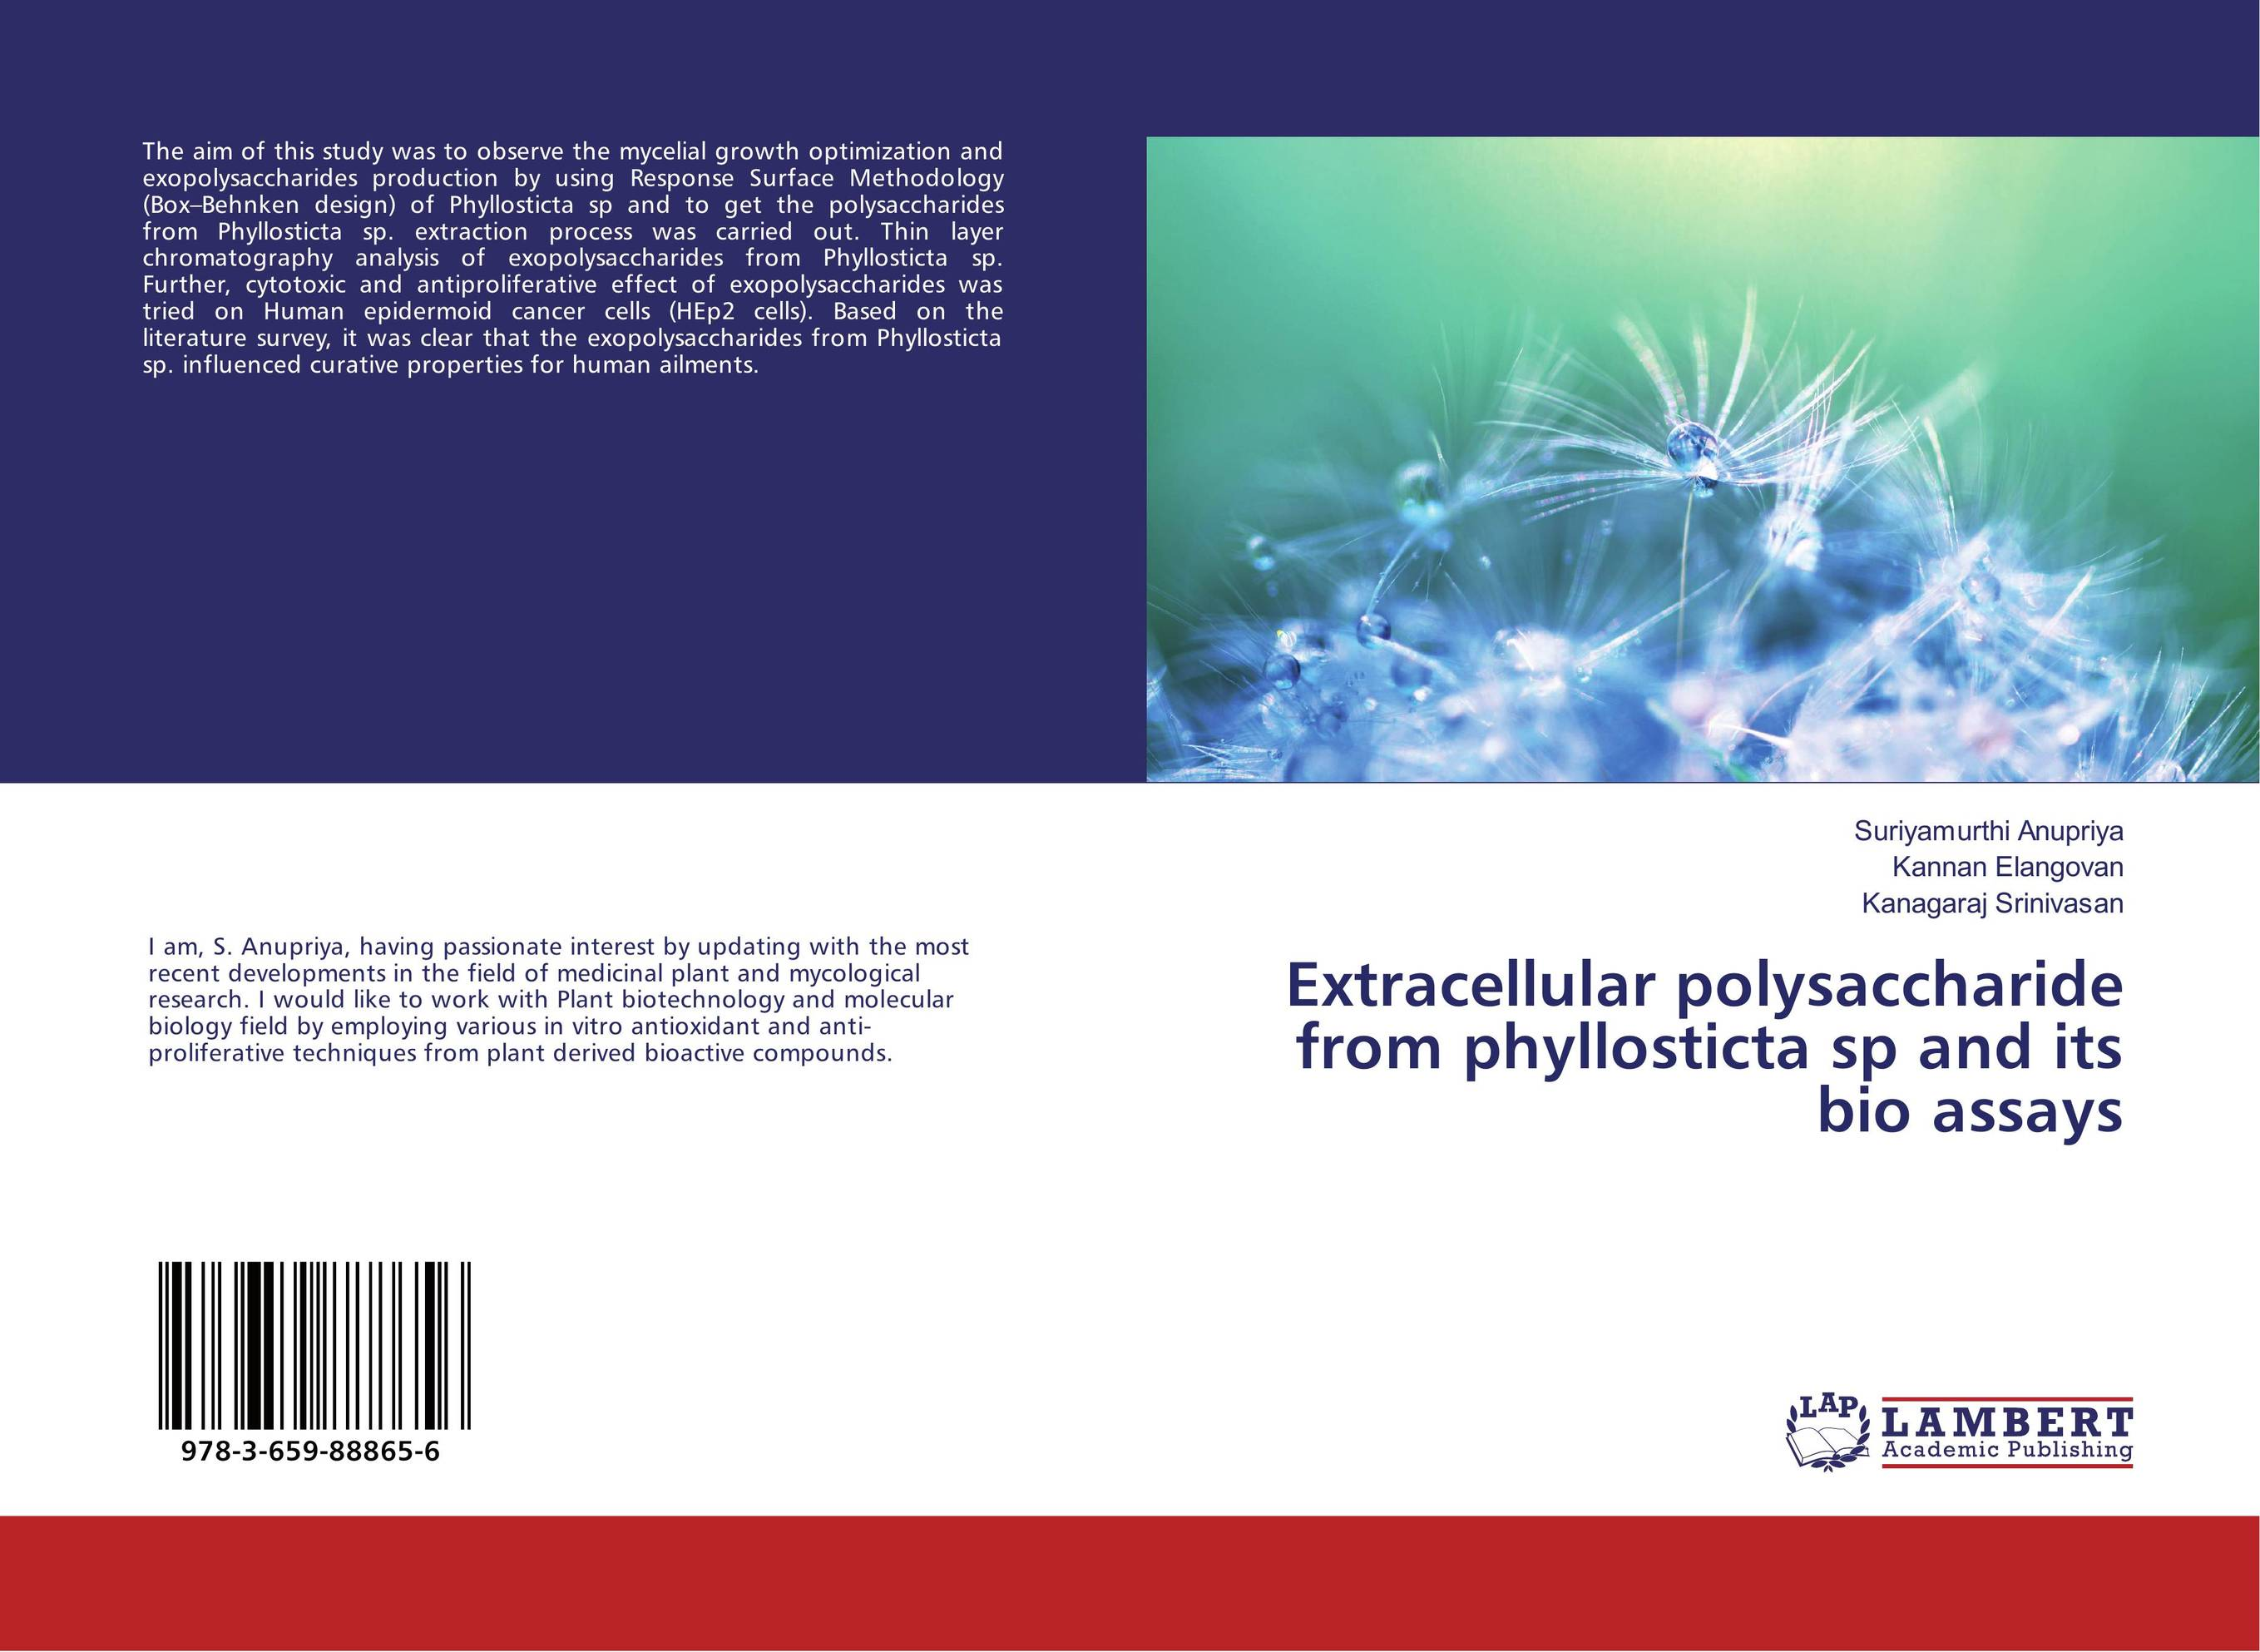 Extracellular polysaccharide from phyllosticta sp and its bio assays protein extraction from fern and its physicochemical properties